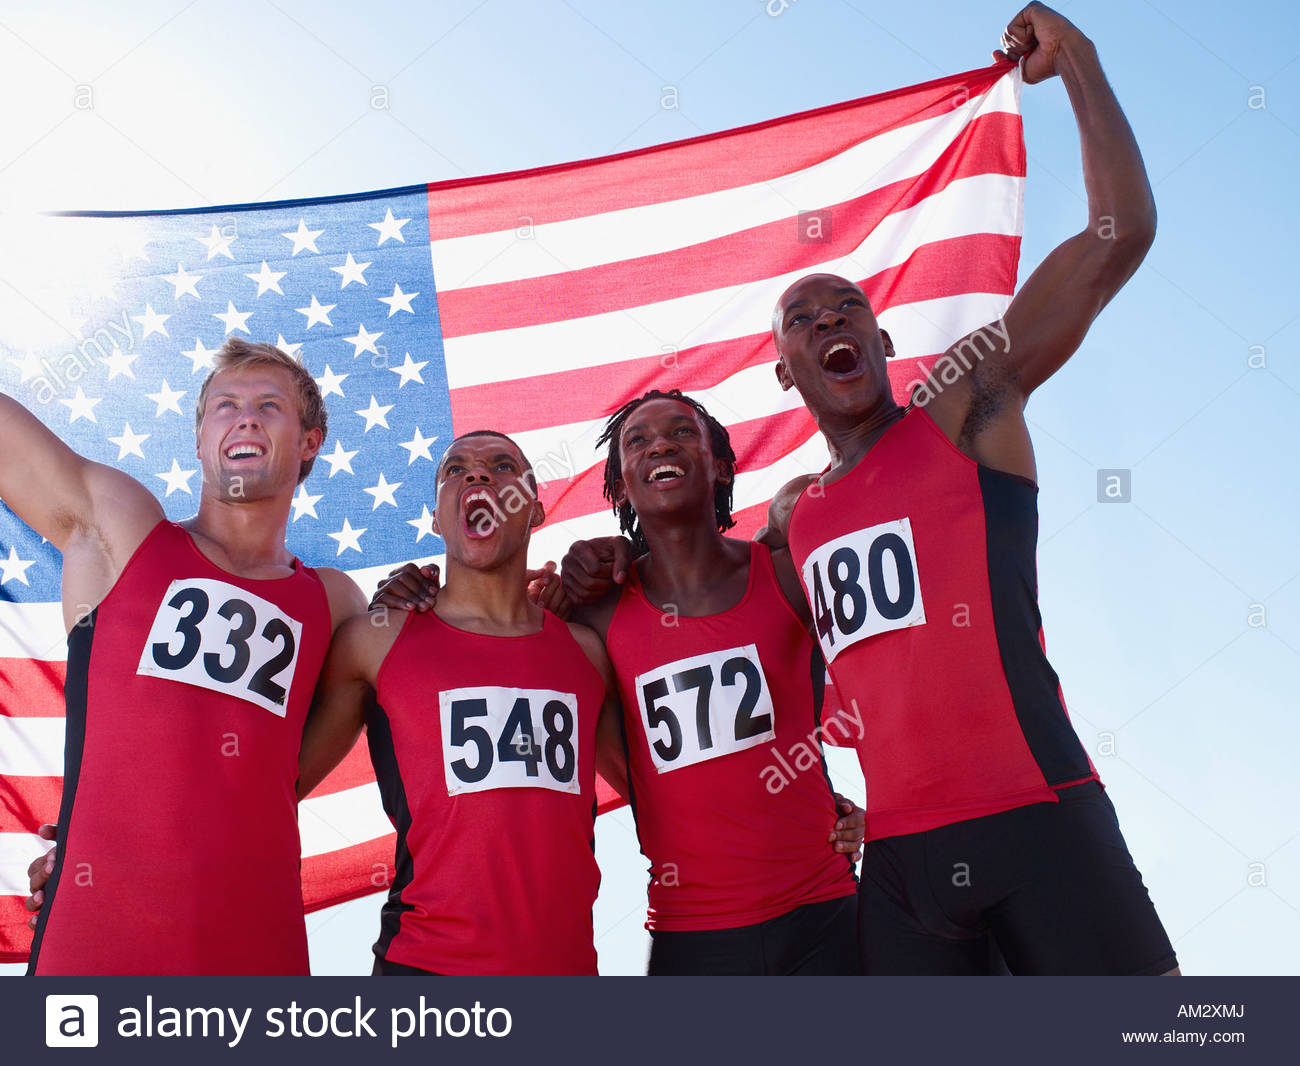 Four athletes cheering together with American flag - Stock Image